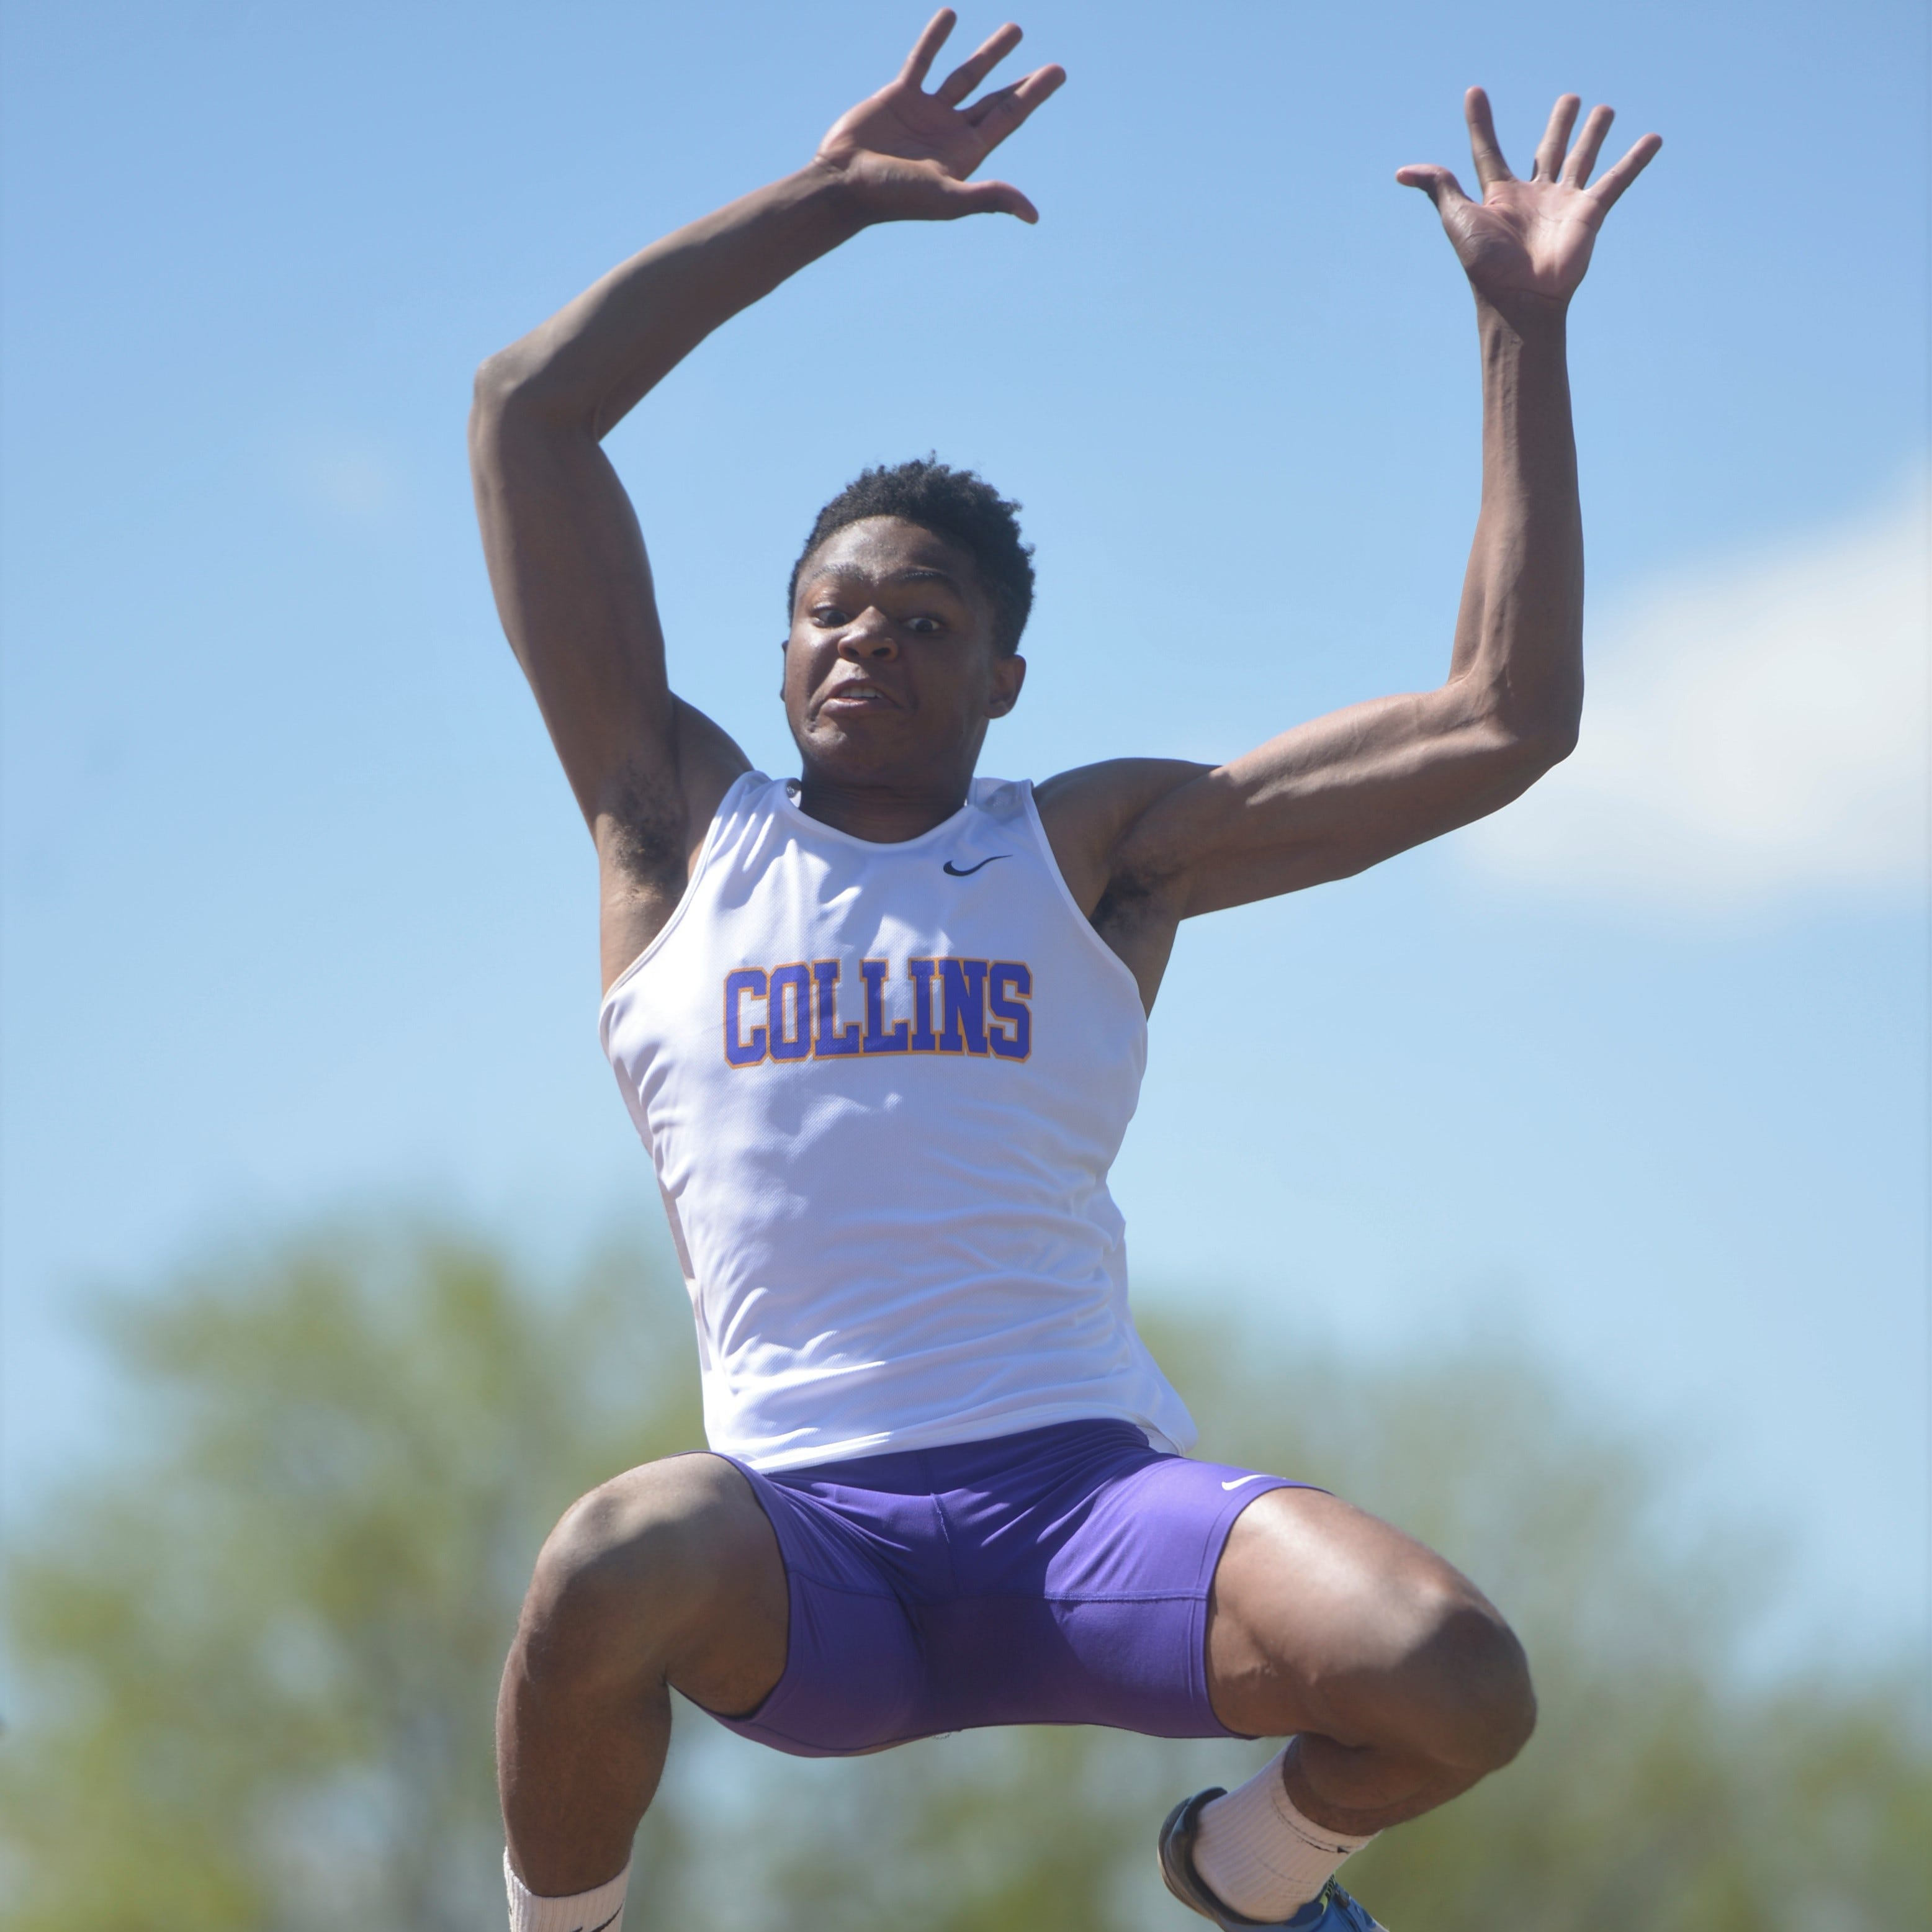 Micaylon Moore cements spot among Fort Collins' track greats with 2nd long jump title